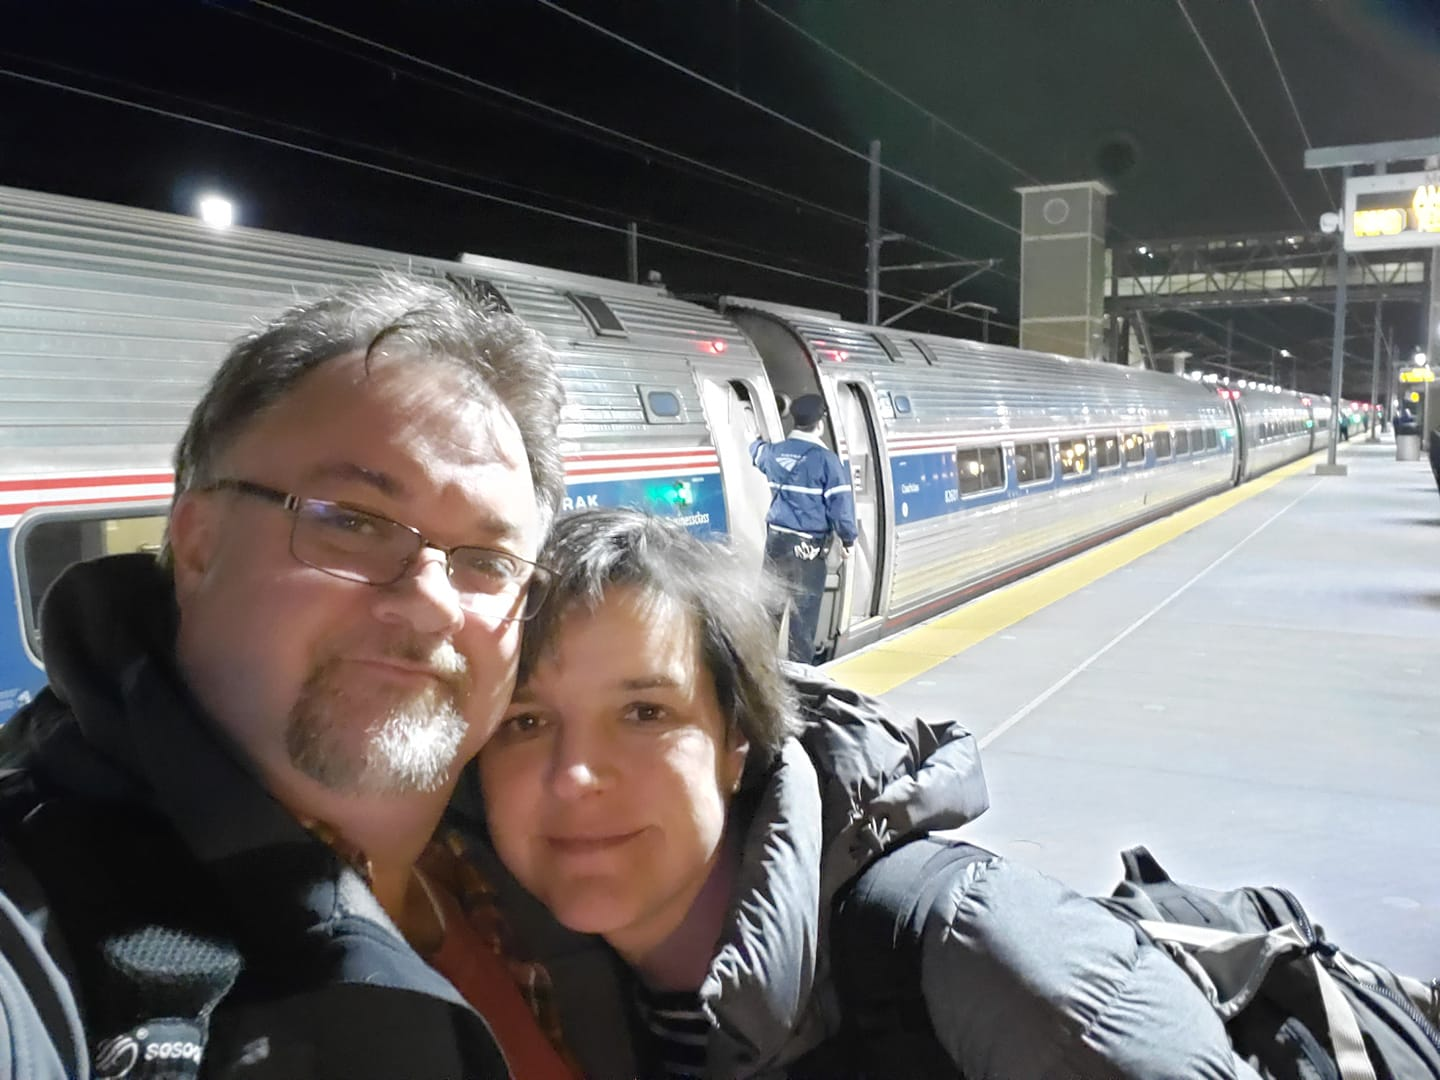 BJ Knapp author of Beside the Music took an epic train trip to NYC and Philly